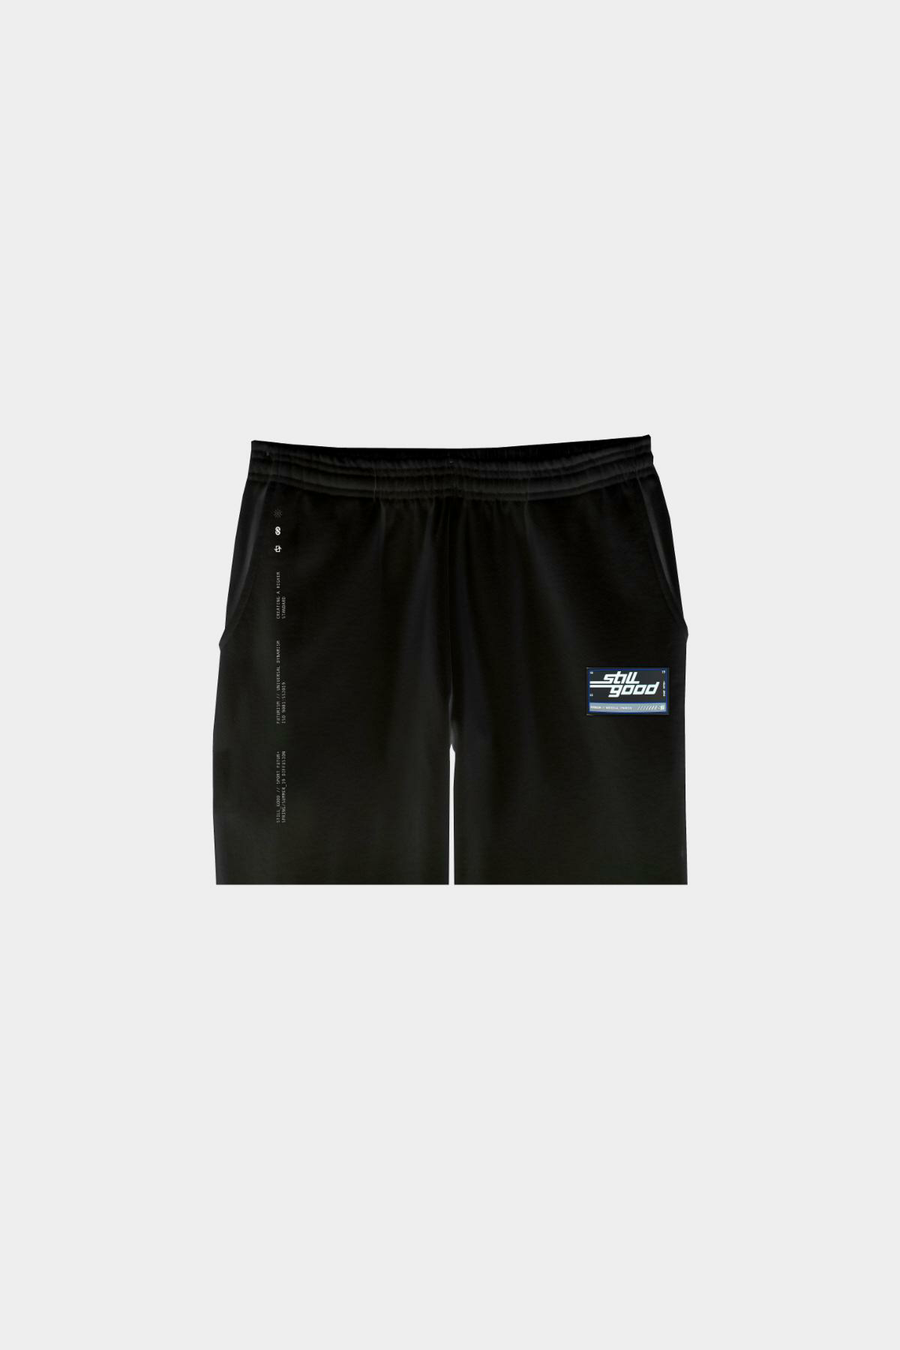 Basic Patch Shorts Black / XS | Still Good